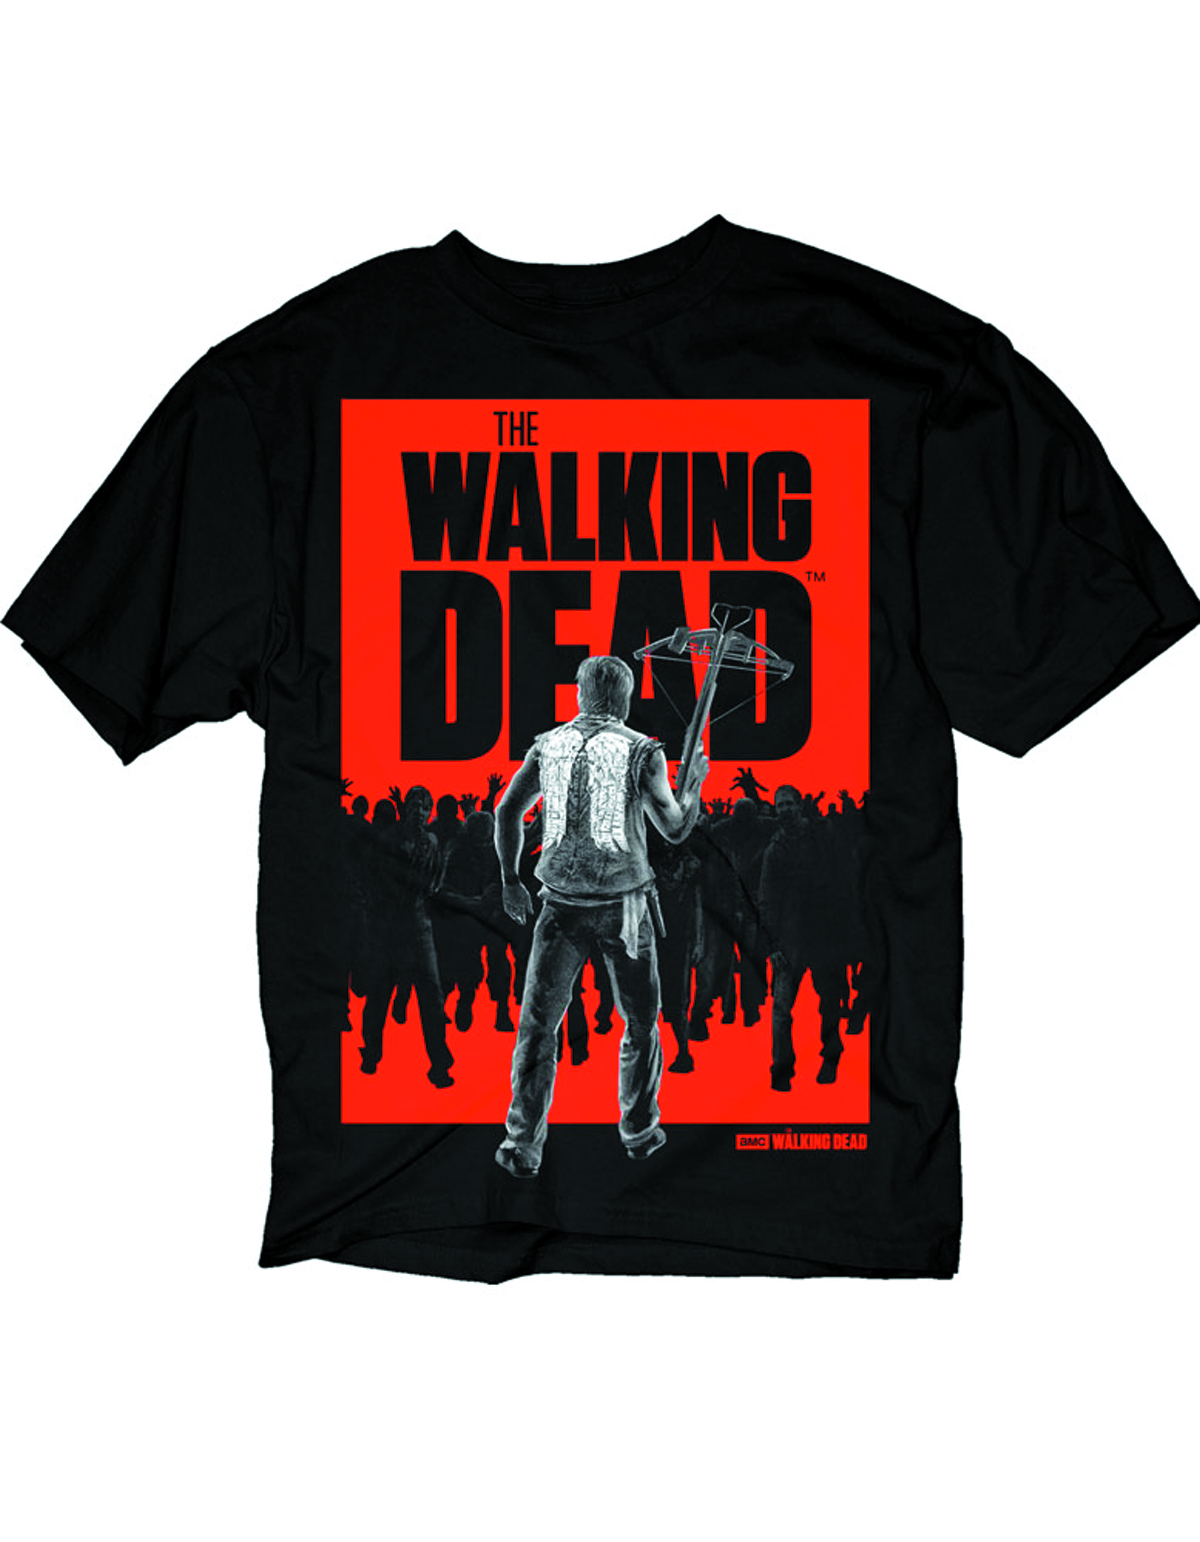 WALKING DEAD DARYL WALKER PX BLK T/S LG